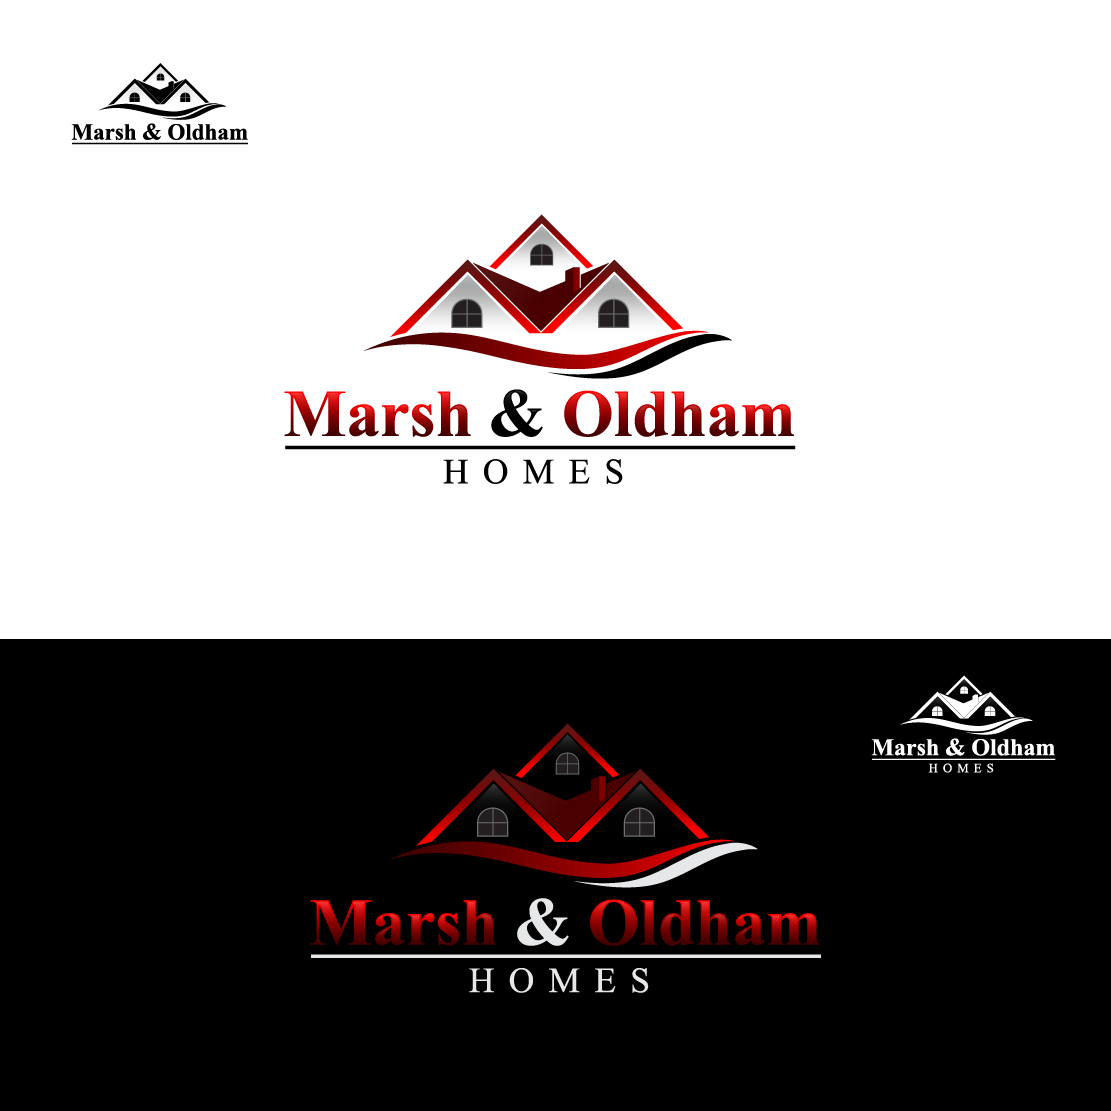 Logo Design by Private User - Entry No. 14 in the Logo Design Contest Artistic Logo Design for Marsh & Oldham Homes.